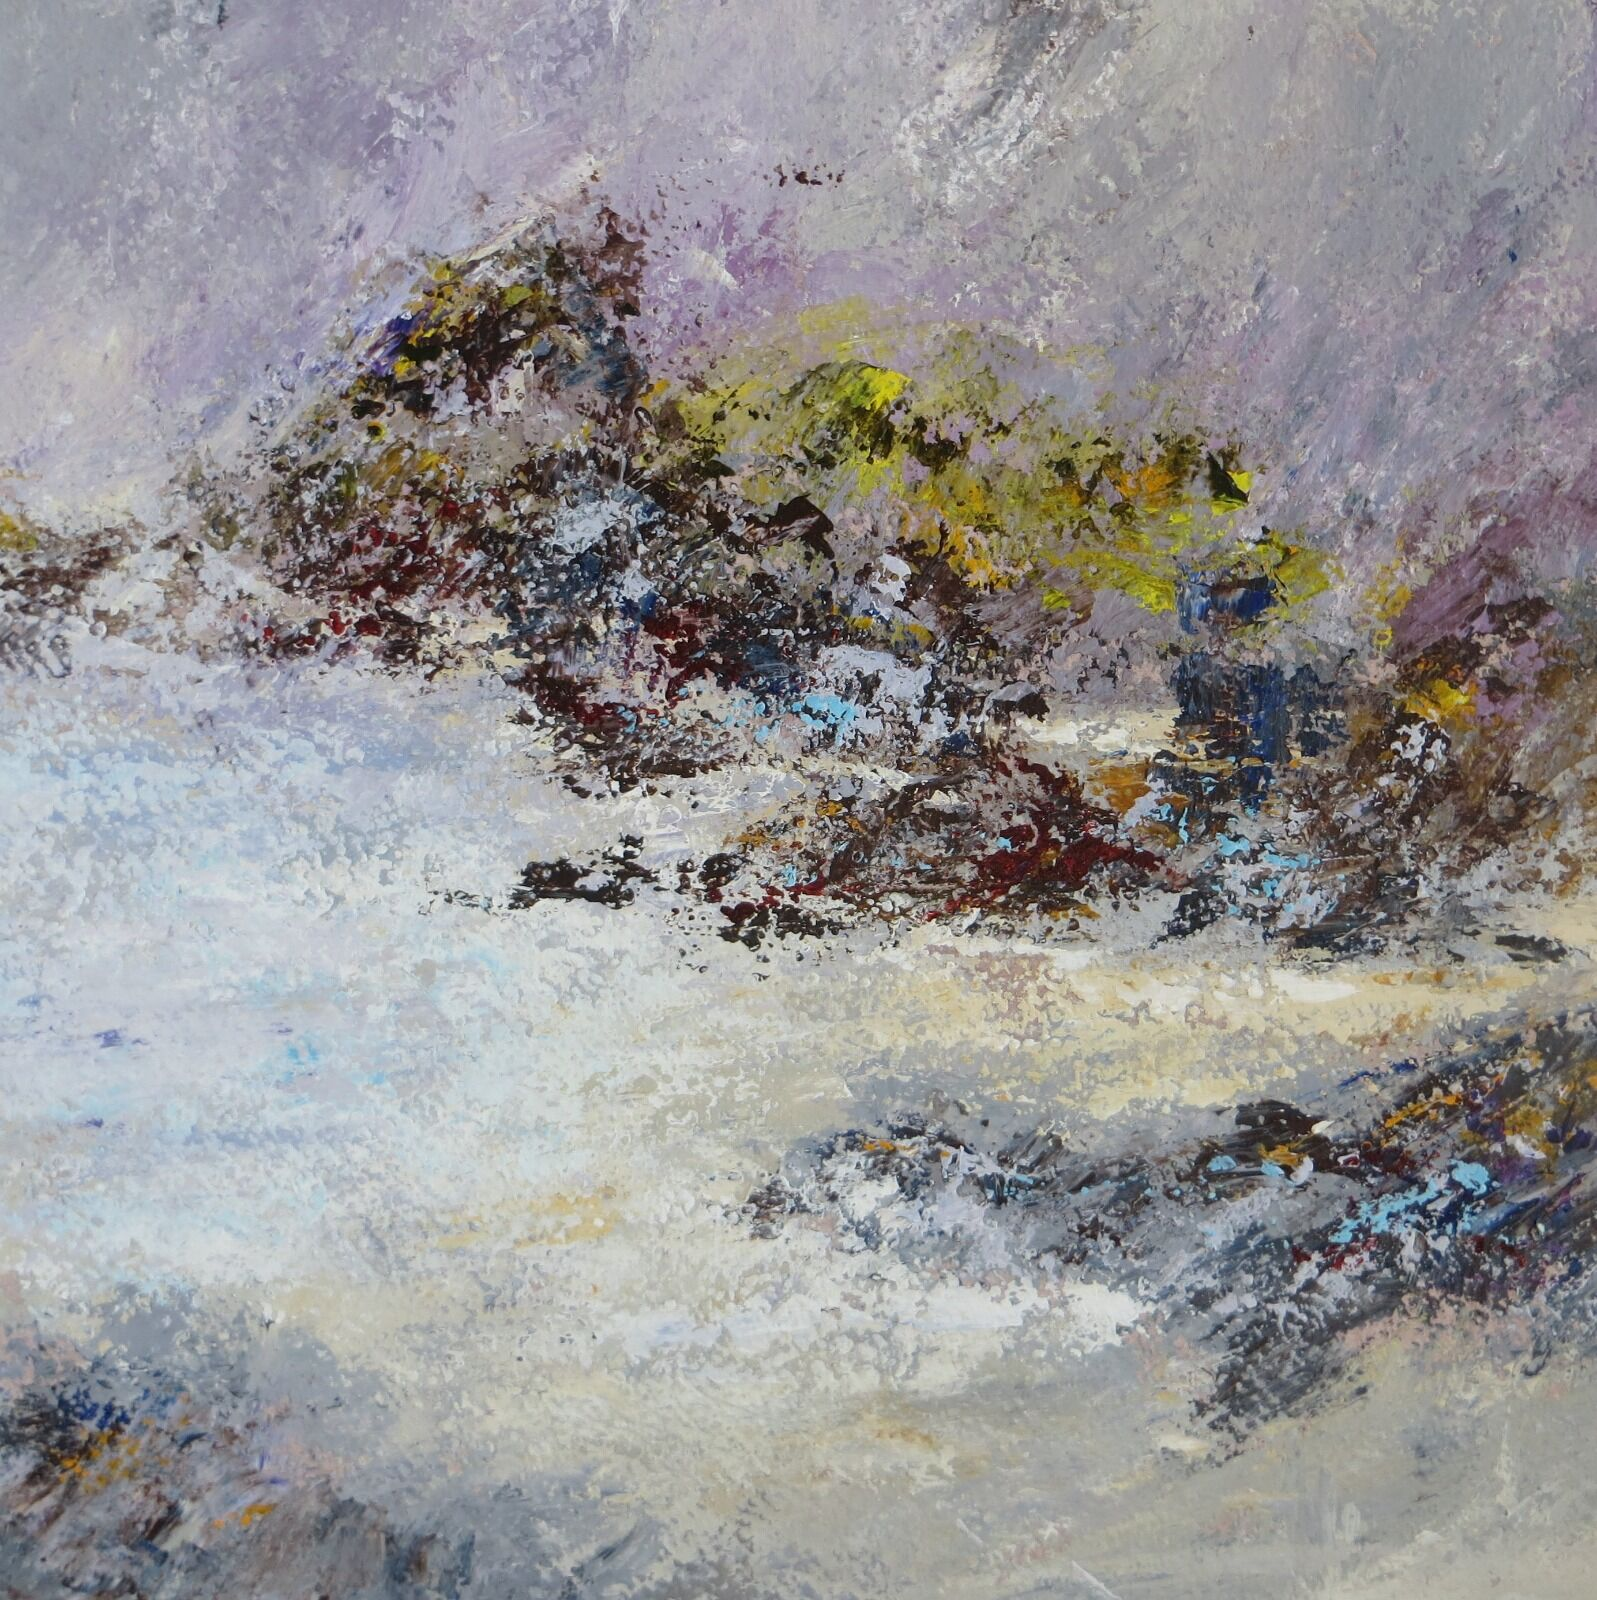 BLUSTERY DAY - KYNANCE COVE